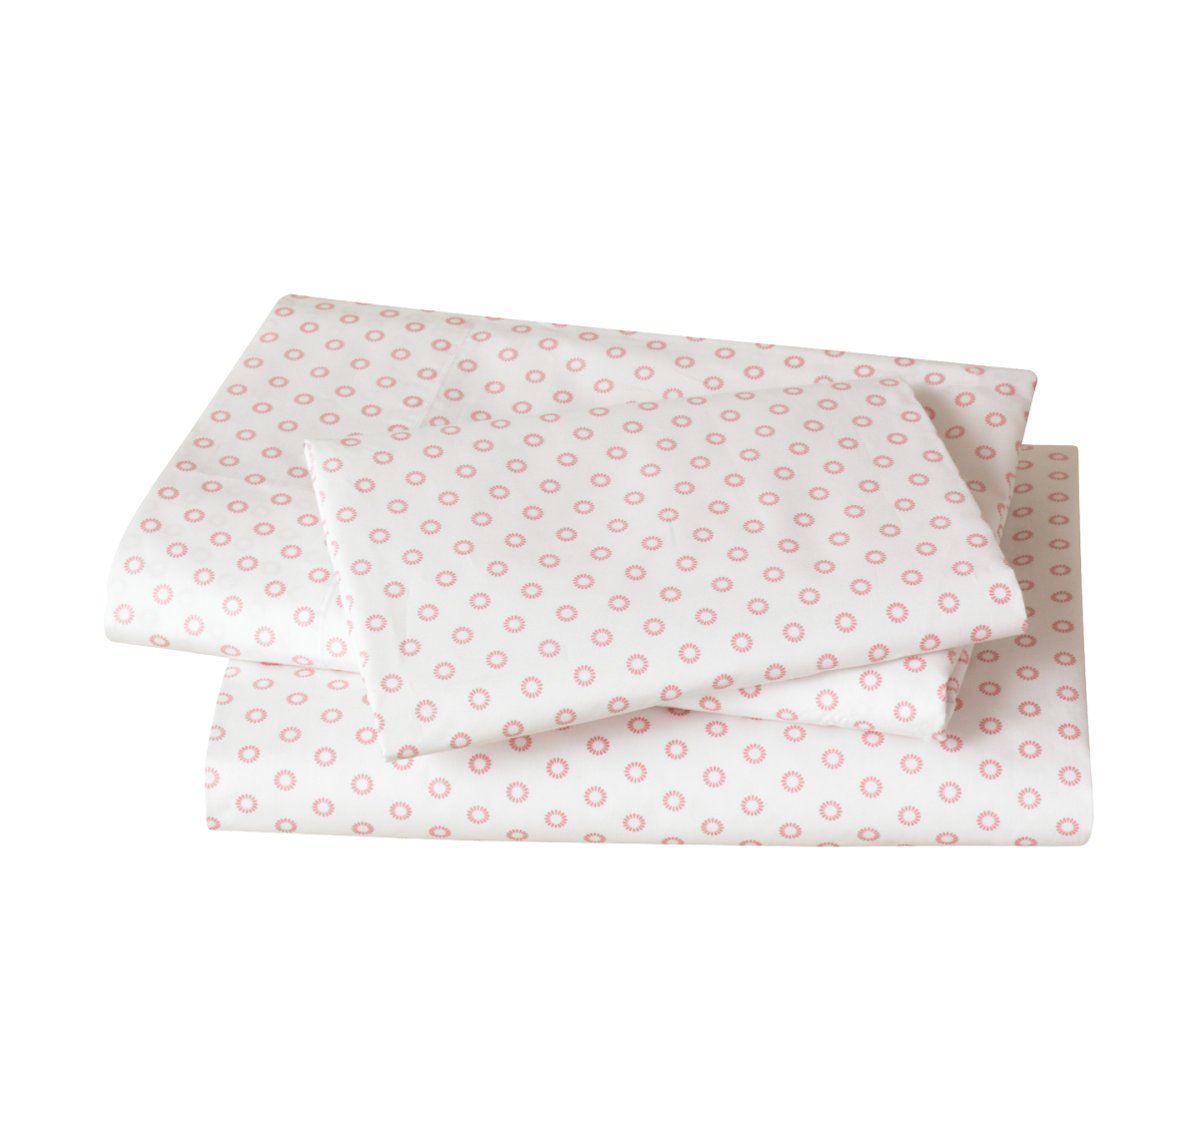 Quirks Marketing Philippines - DwellStudio - Floral Dot Pale Rose Sheet Set